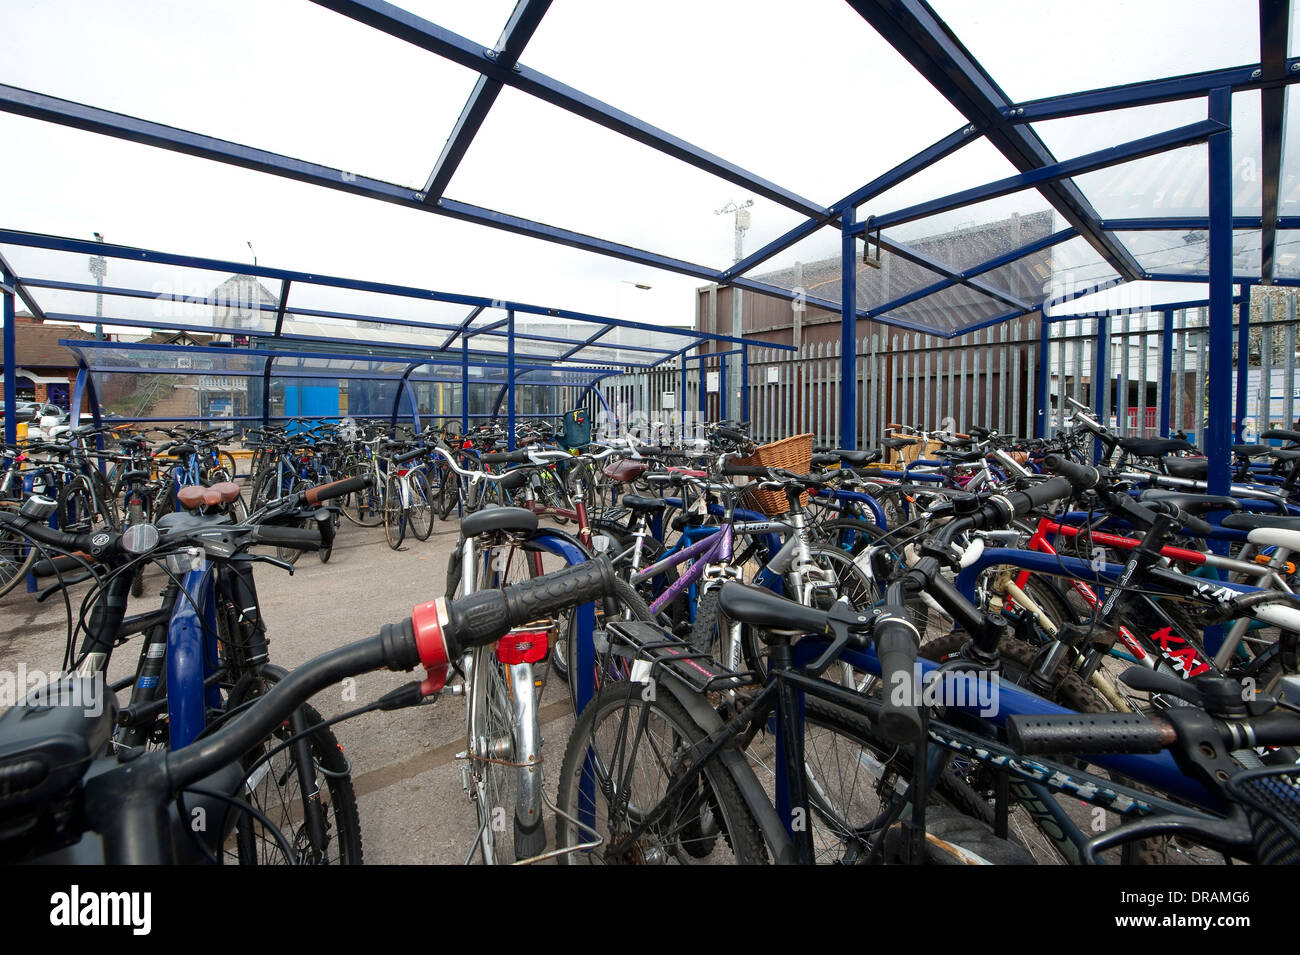 Bicycles parked safely in secure cycle parking area outside a railway station in England. - Stock Image